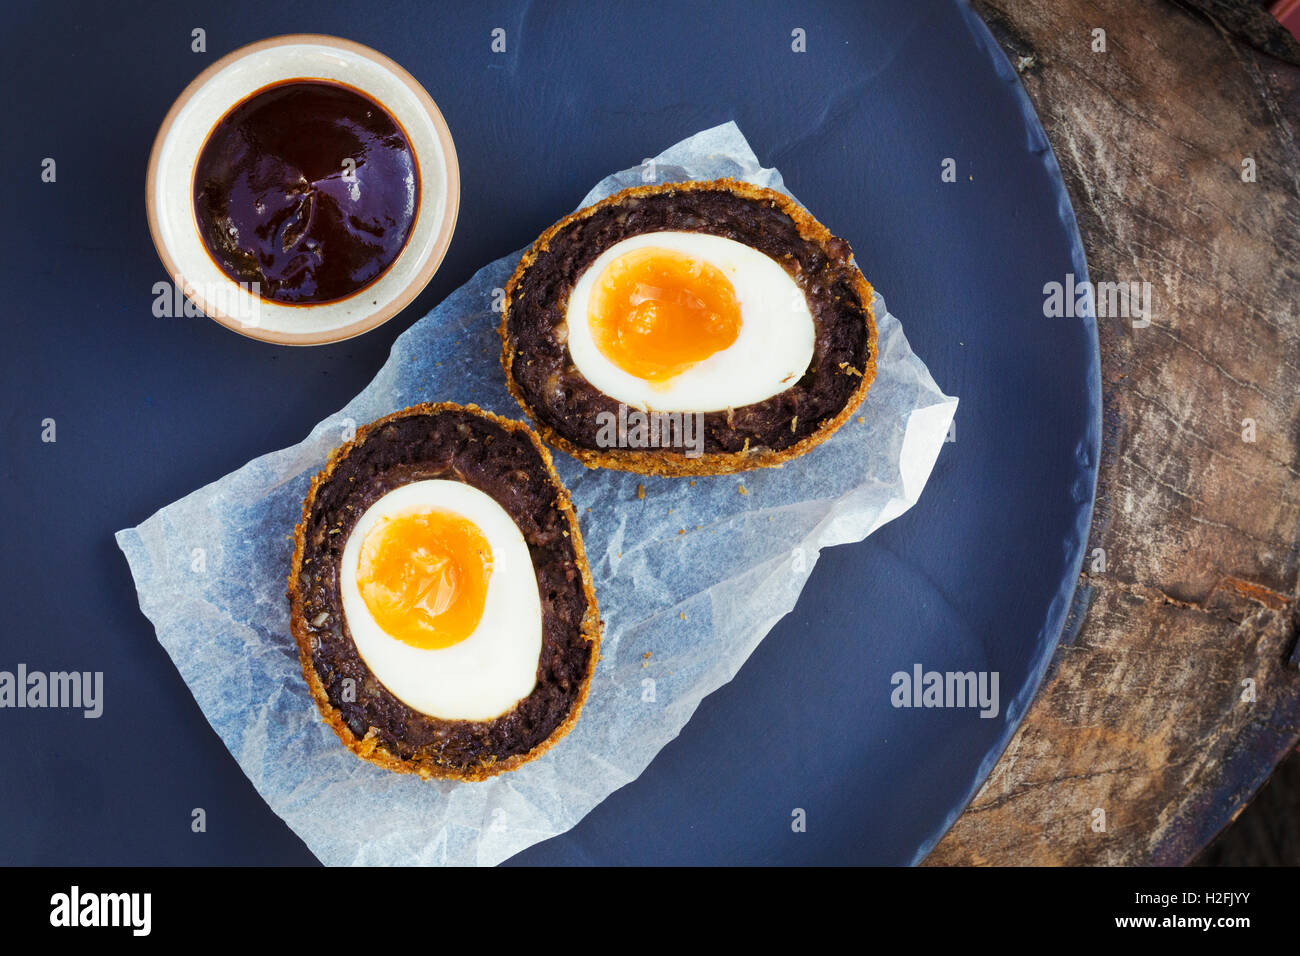 Village pub food. A blue dish with a fresh made scotch egg cut in to two and a pot of sauce. - Stock Image